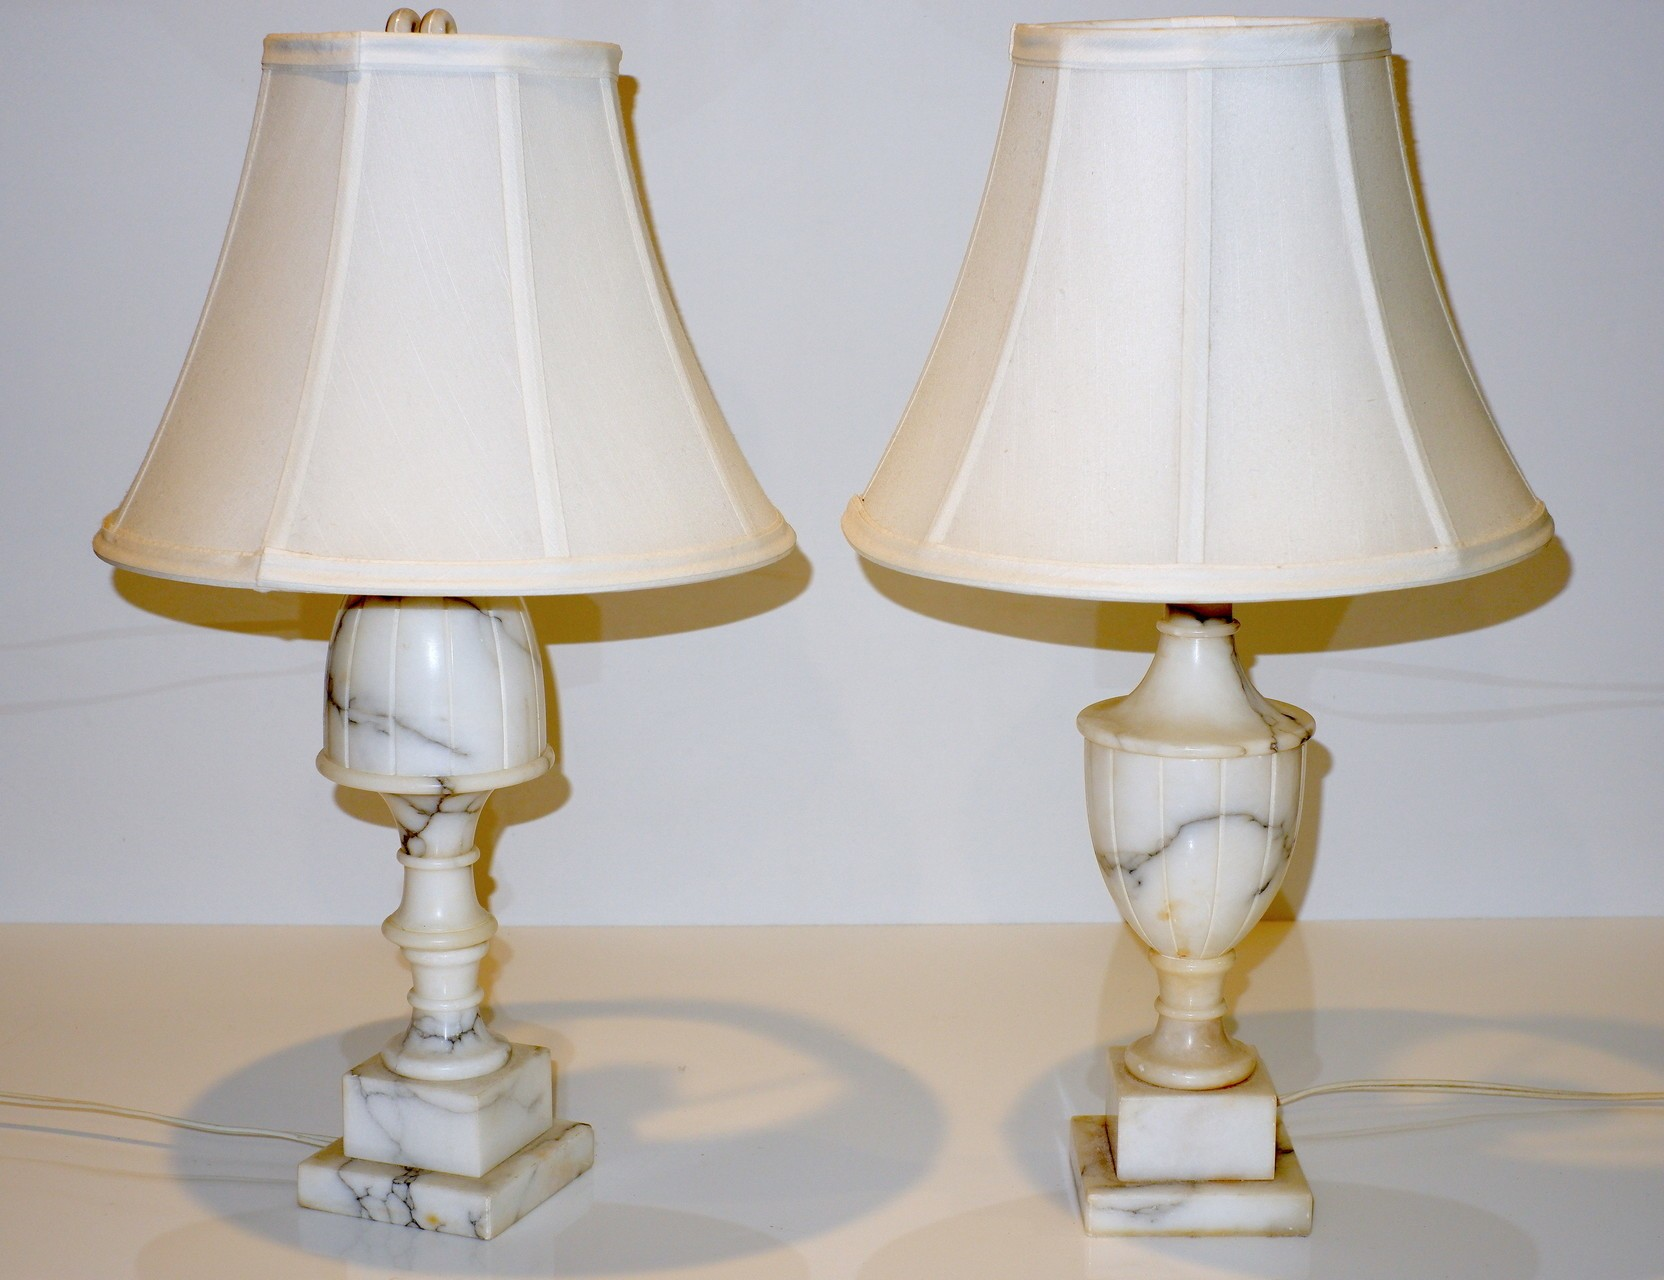 'Near Pair of Marble Based Lamps'